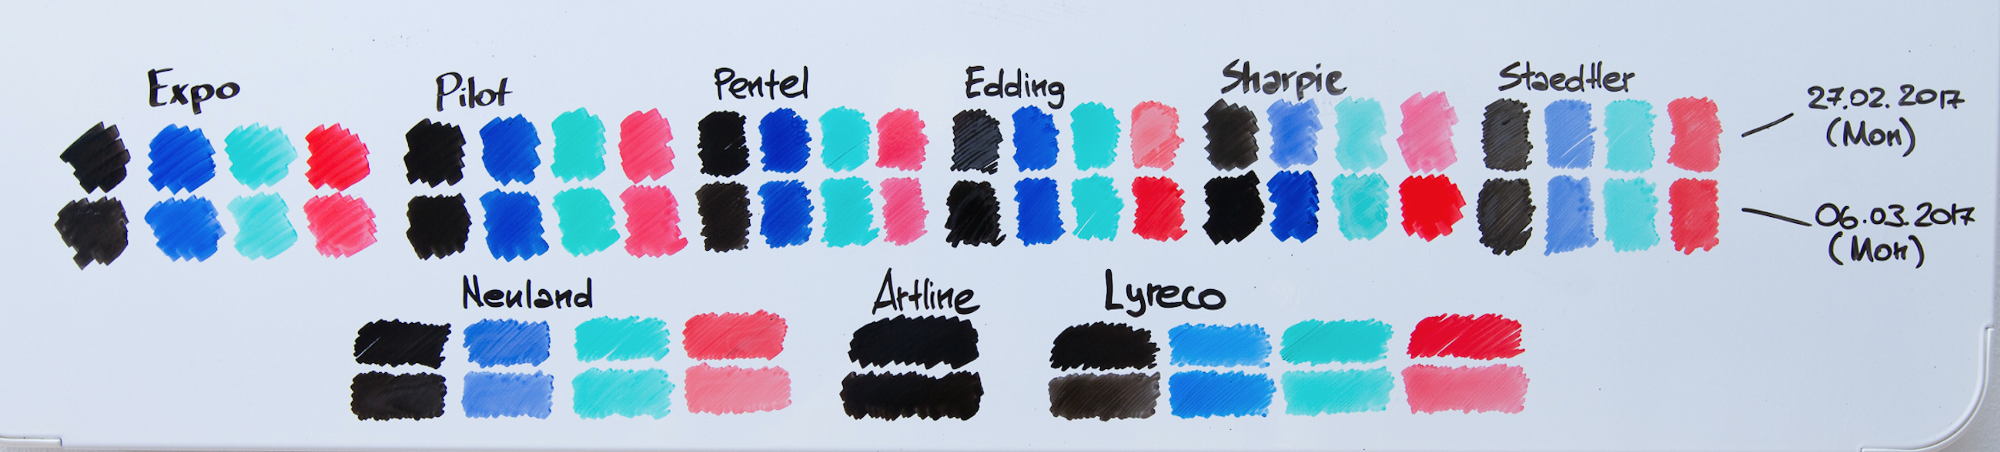 352165a36c Each of the basic colour was drawn twice — first the upper row, and then the  bottom row in 1 week time. Swatches are drawn close to each other ...